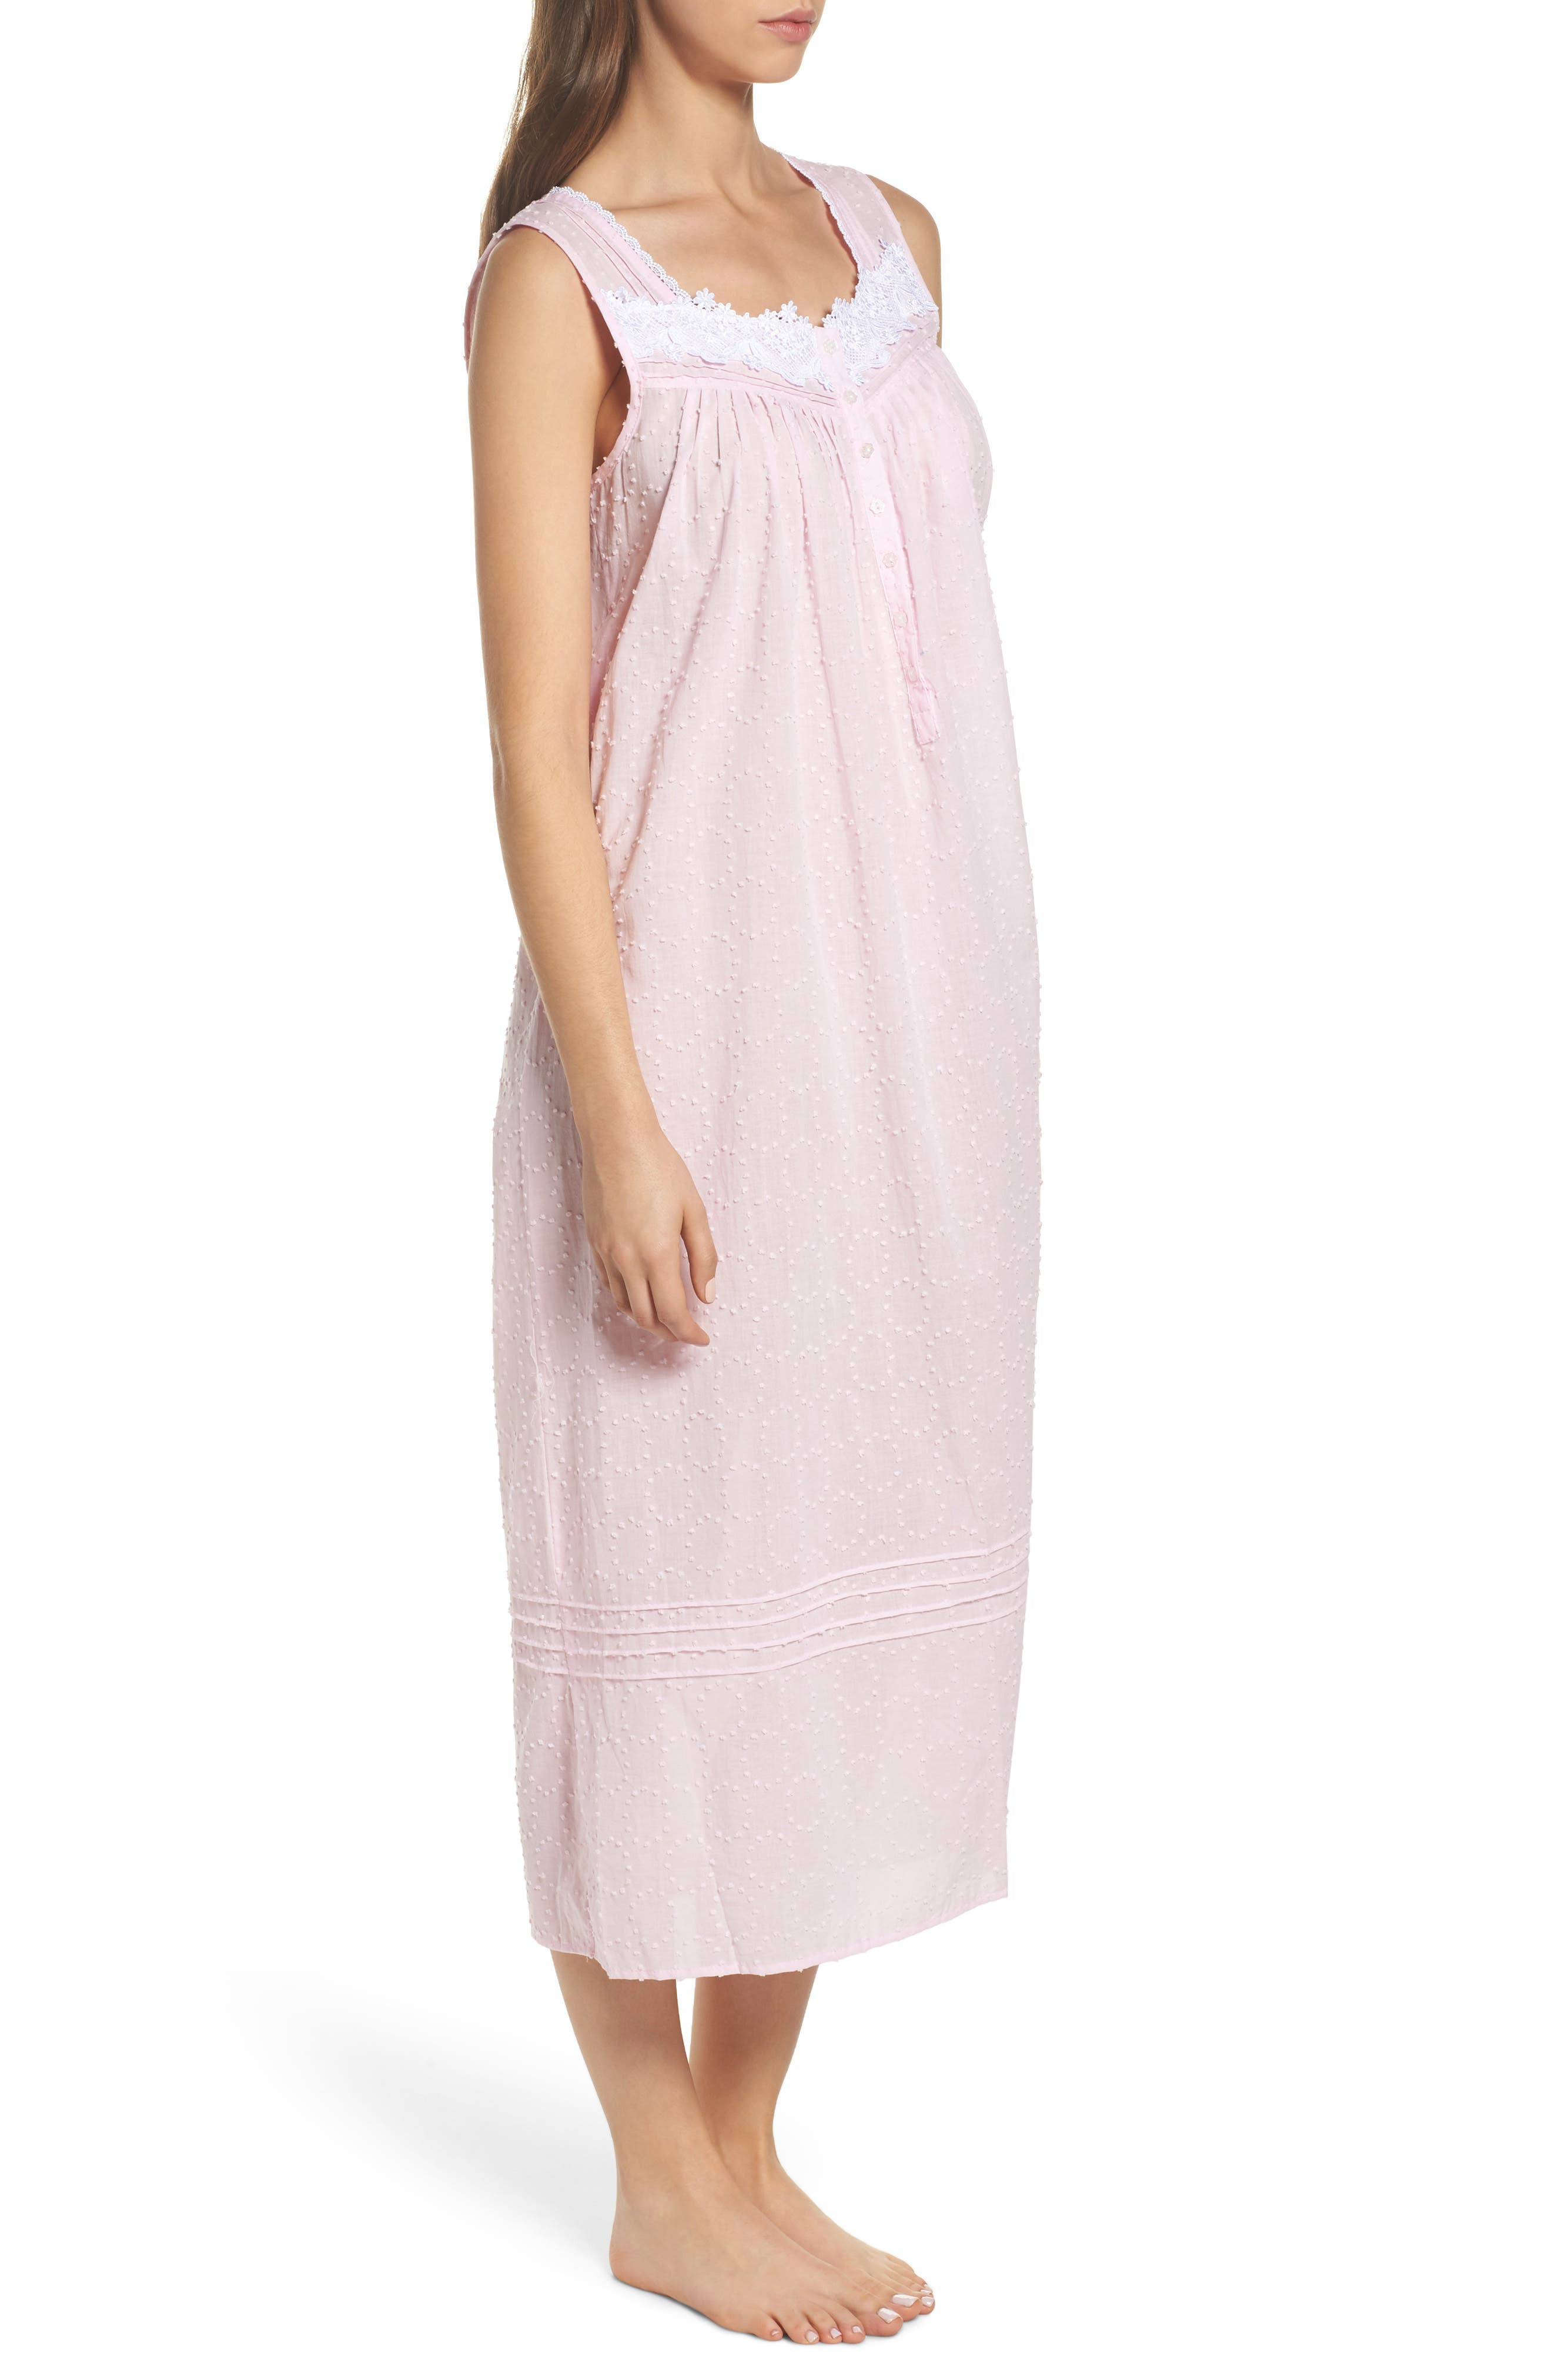 Swiss Dot Nightgown,                             Alternate thumbnail 3, color,                             Solid Rose Circle Clip Dot